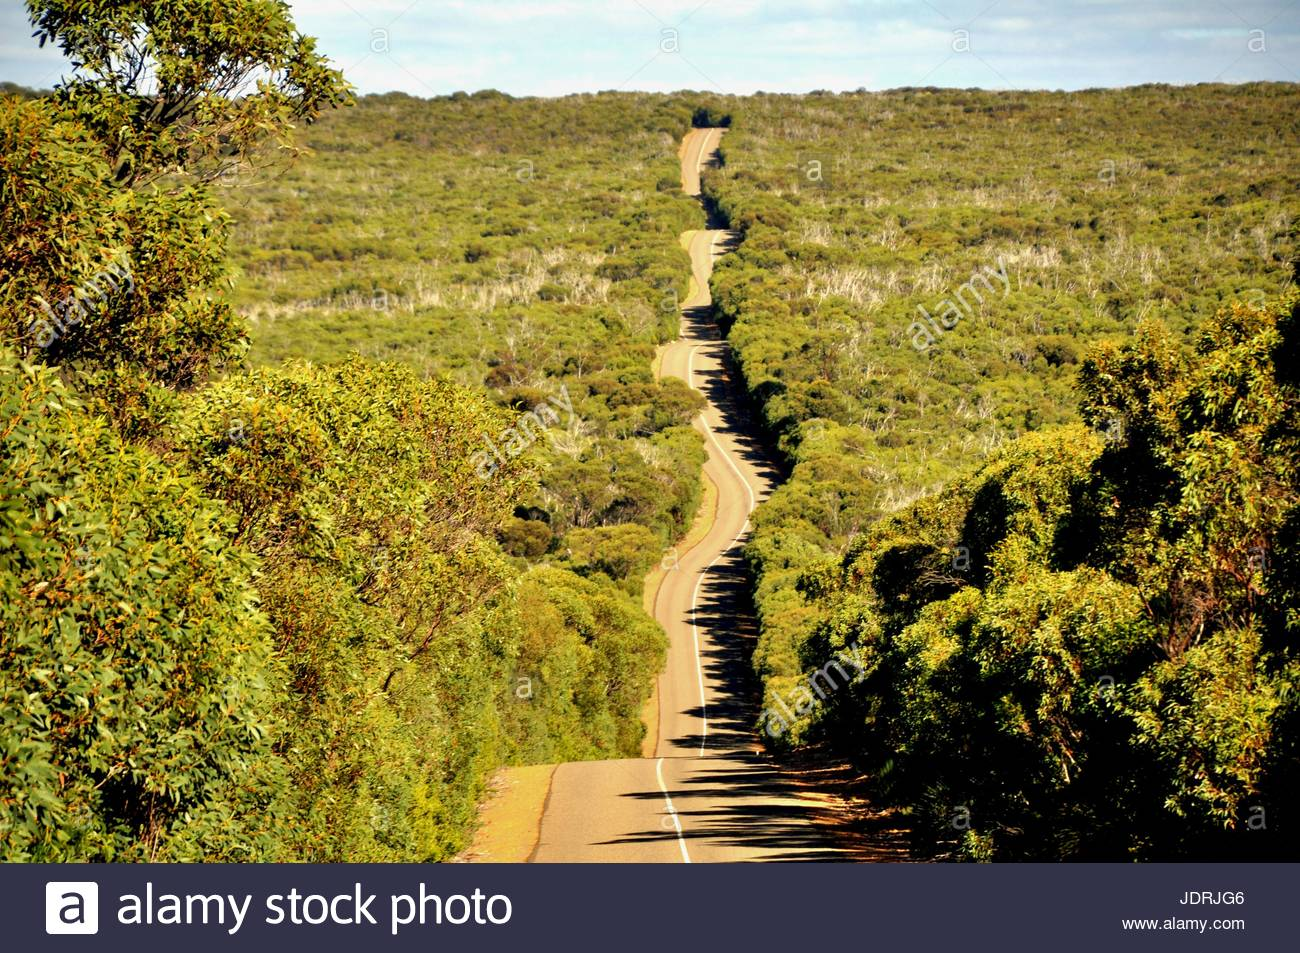 Native plants in the South Australian Murray-Darling Basin - Stock Image